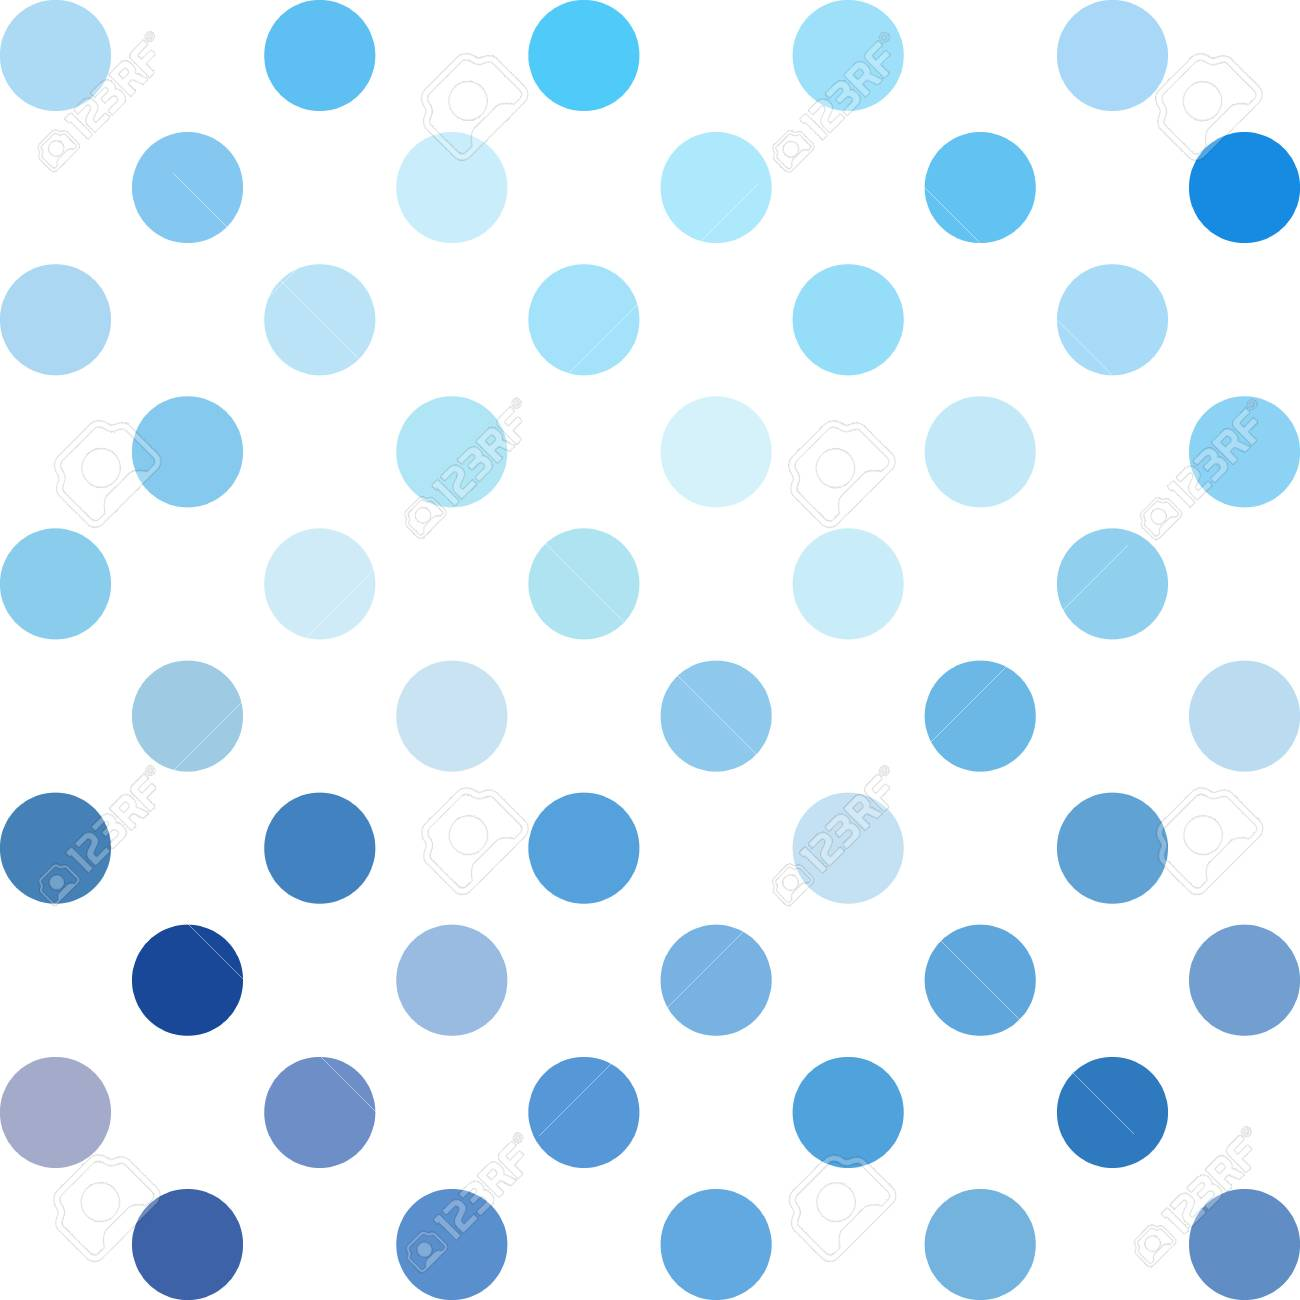 blue polka dots background creative design templates royalty free